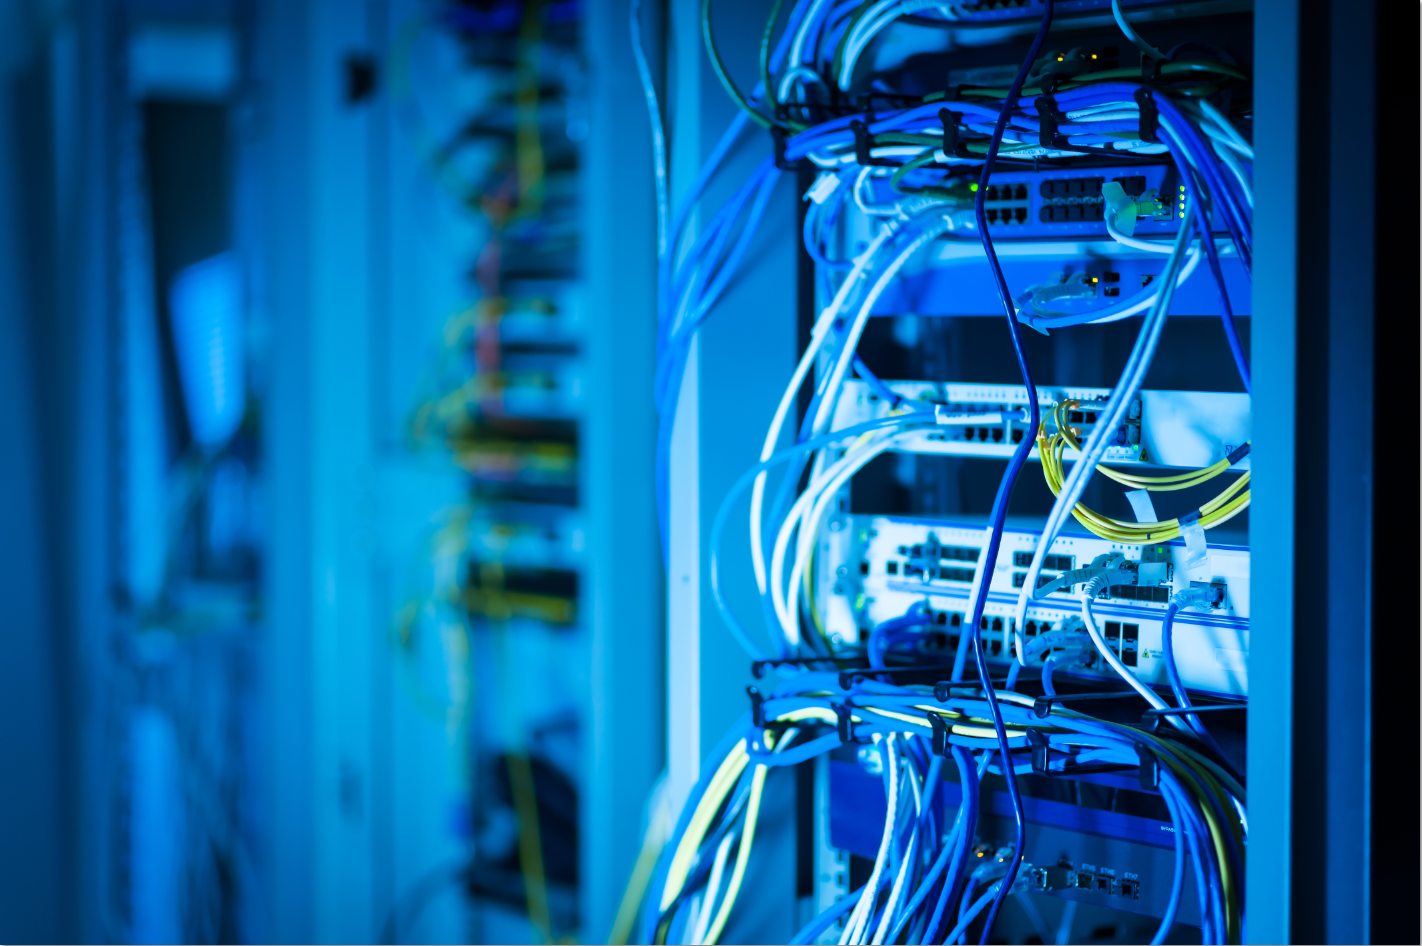 Business I.T. Network Cabling in Upland